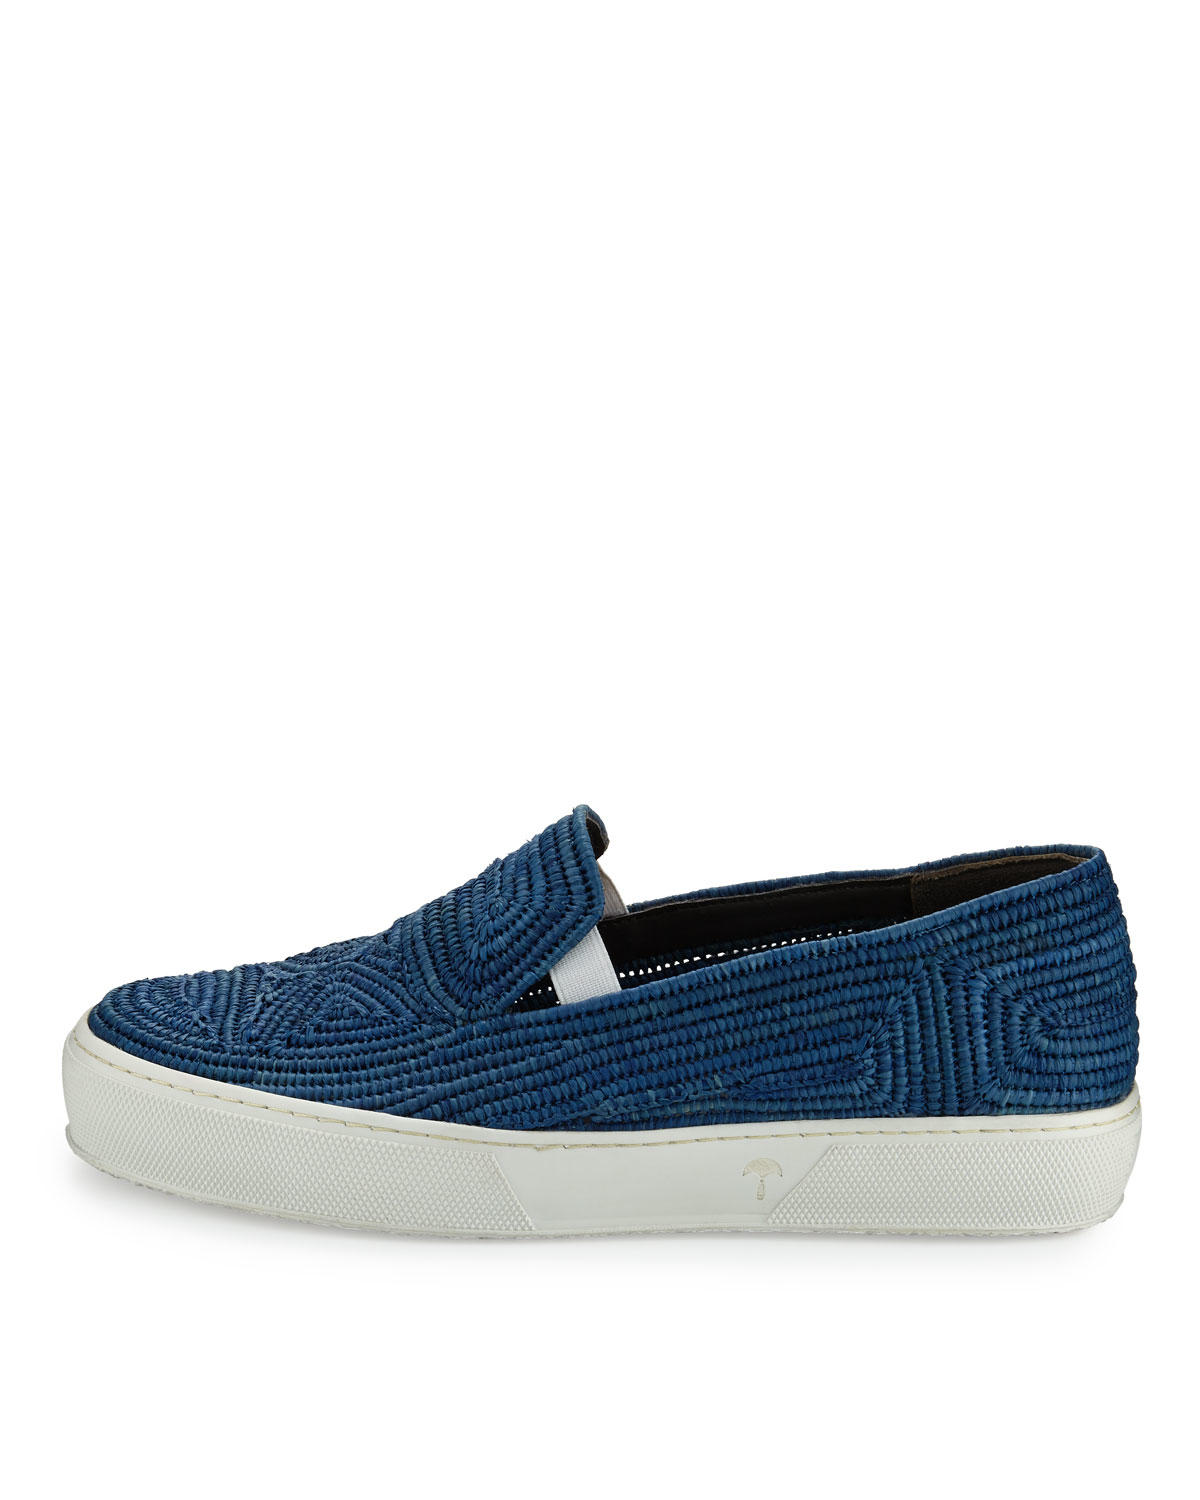 073de215f11aaa robert-clergerie-blue-tribal-woven-raffia-sneaker-product-1-826594096-normal.jpeg